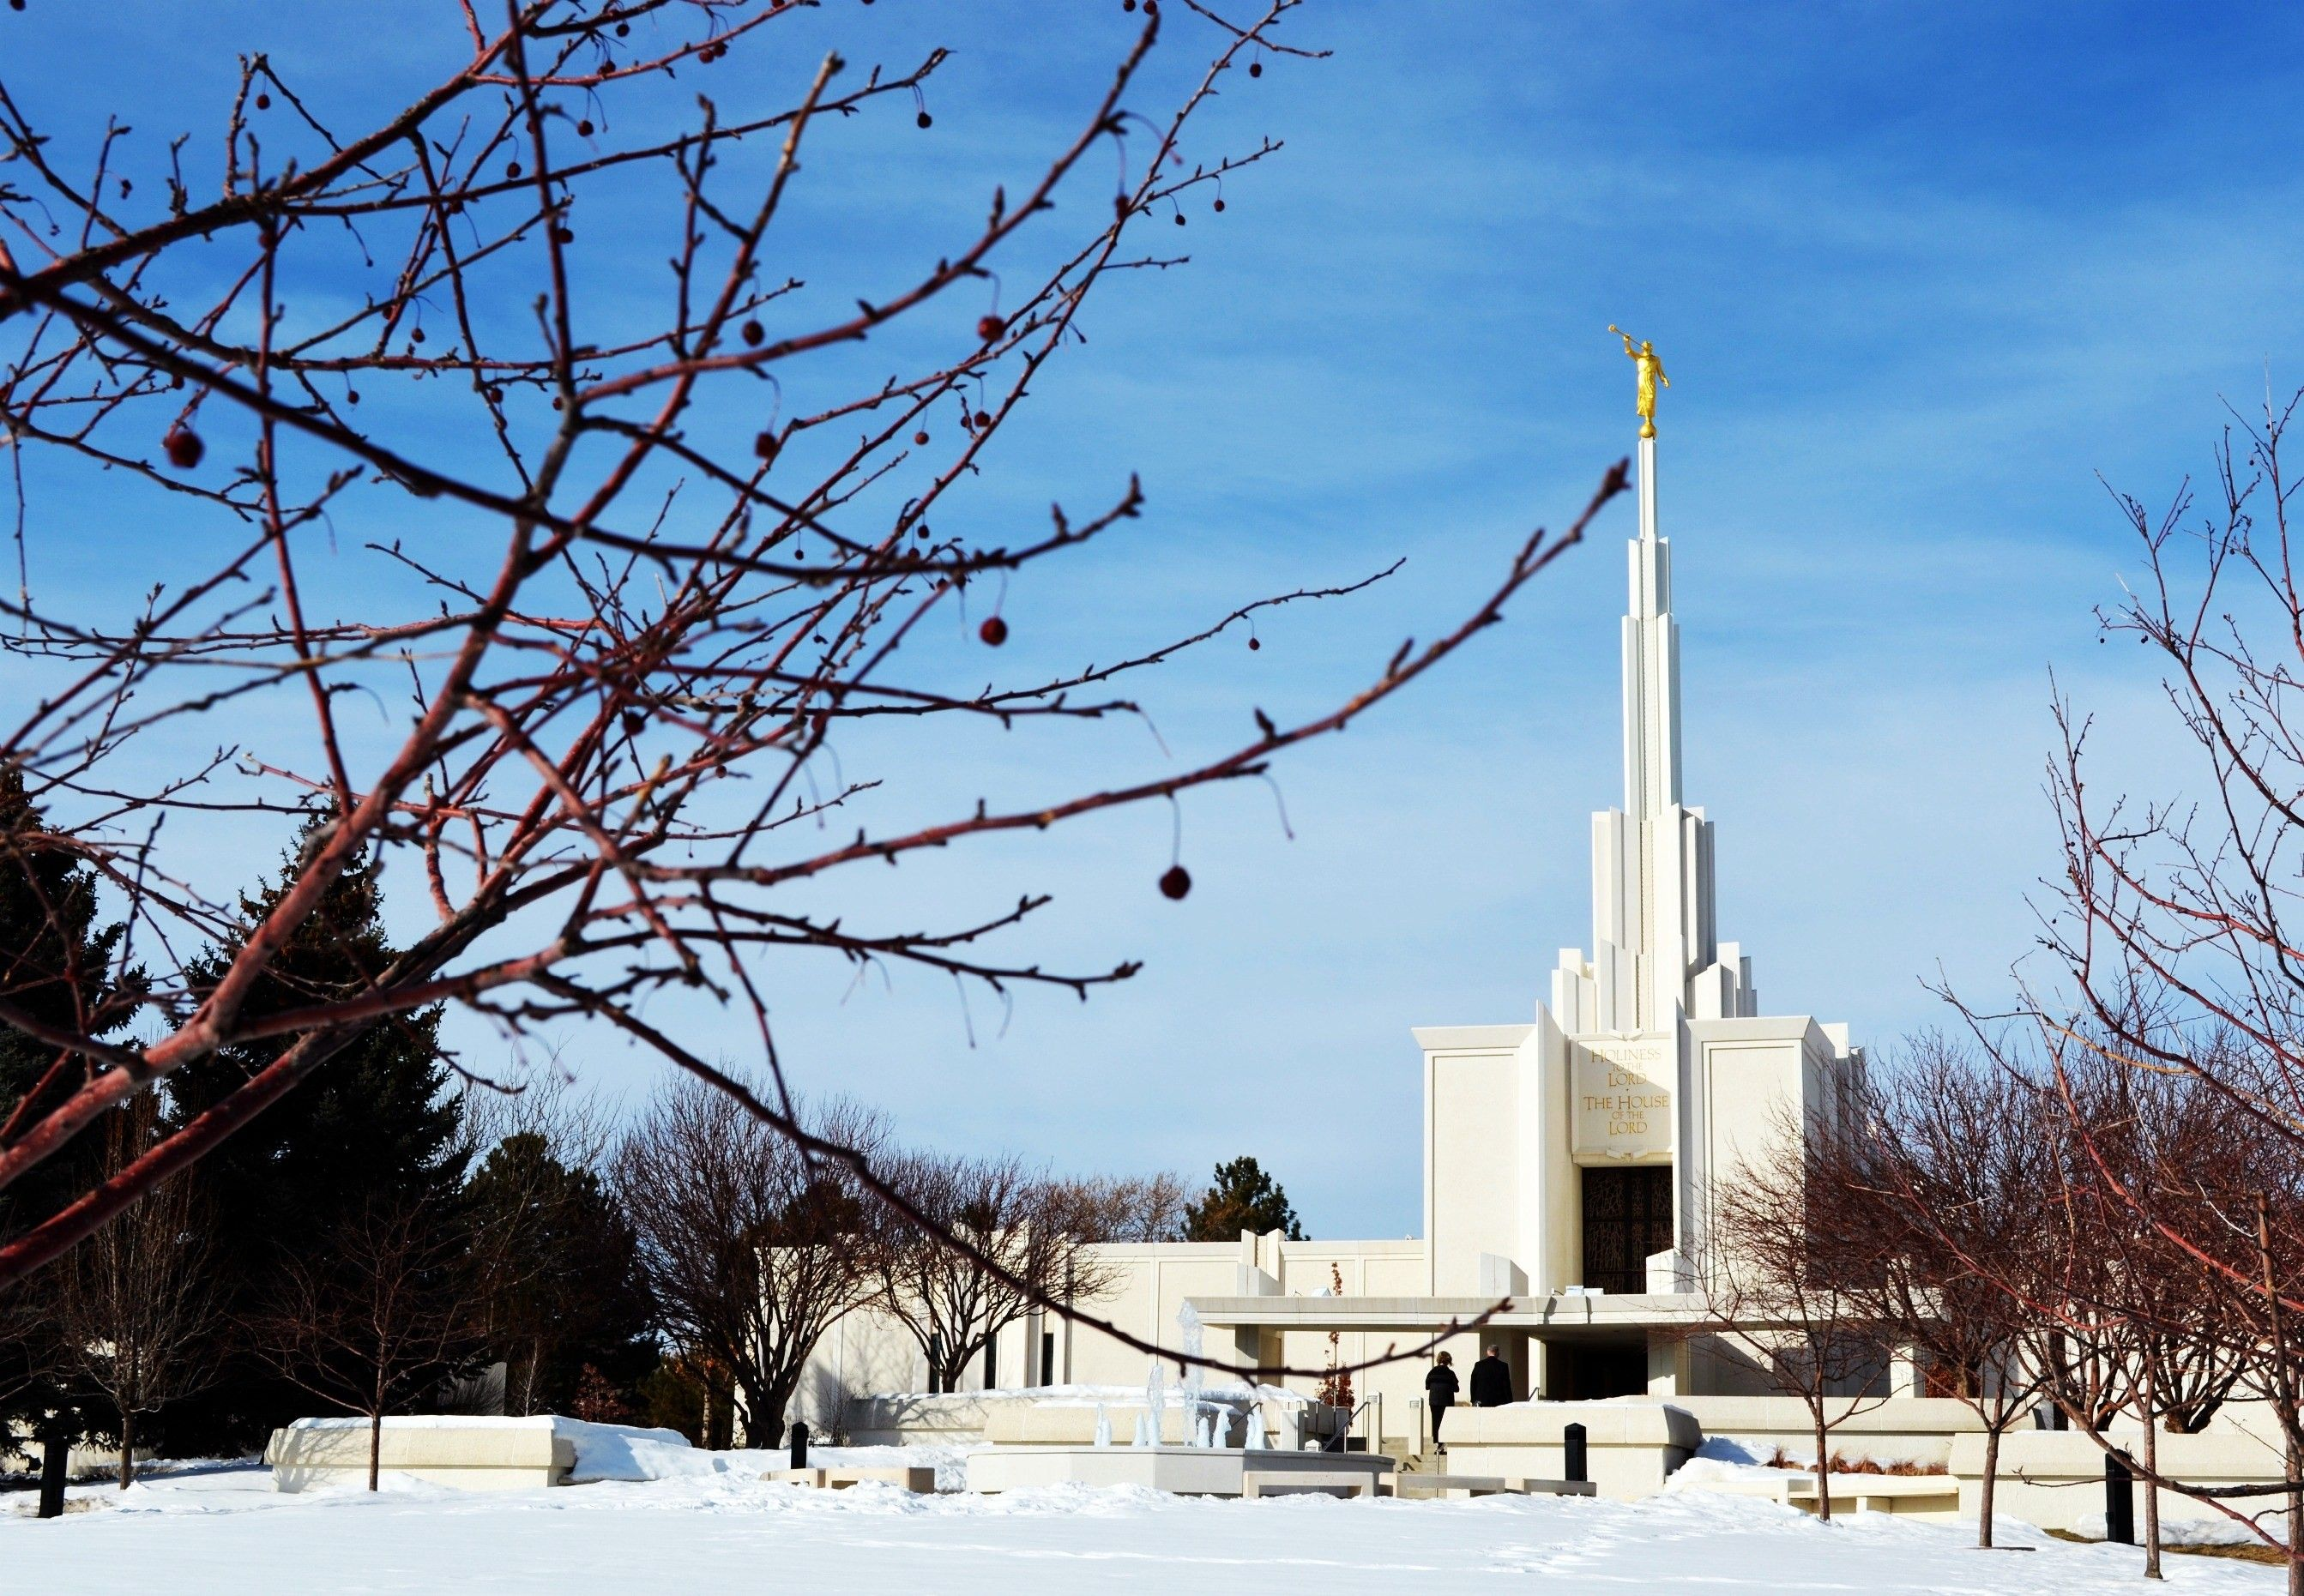 A view of the Denver Colorado Temple and grounds in the wintertime.